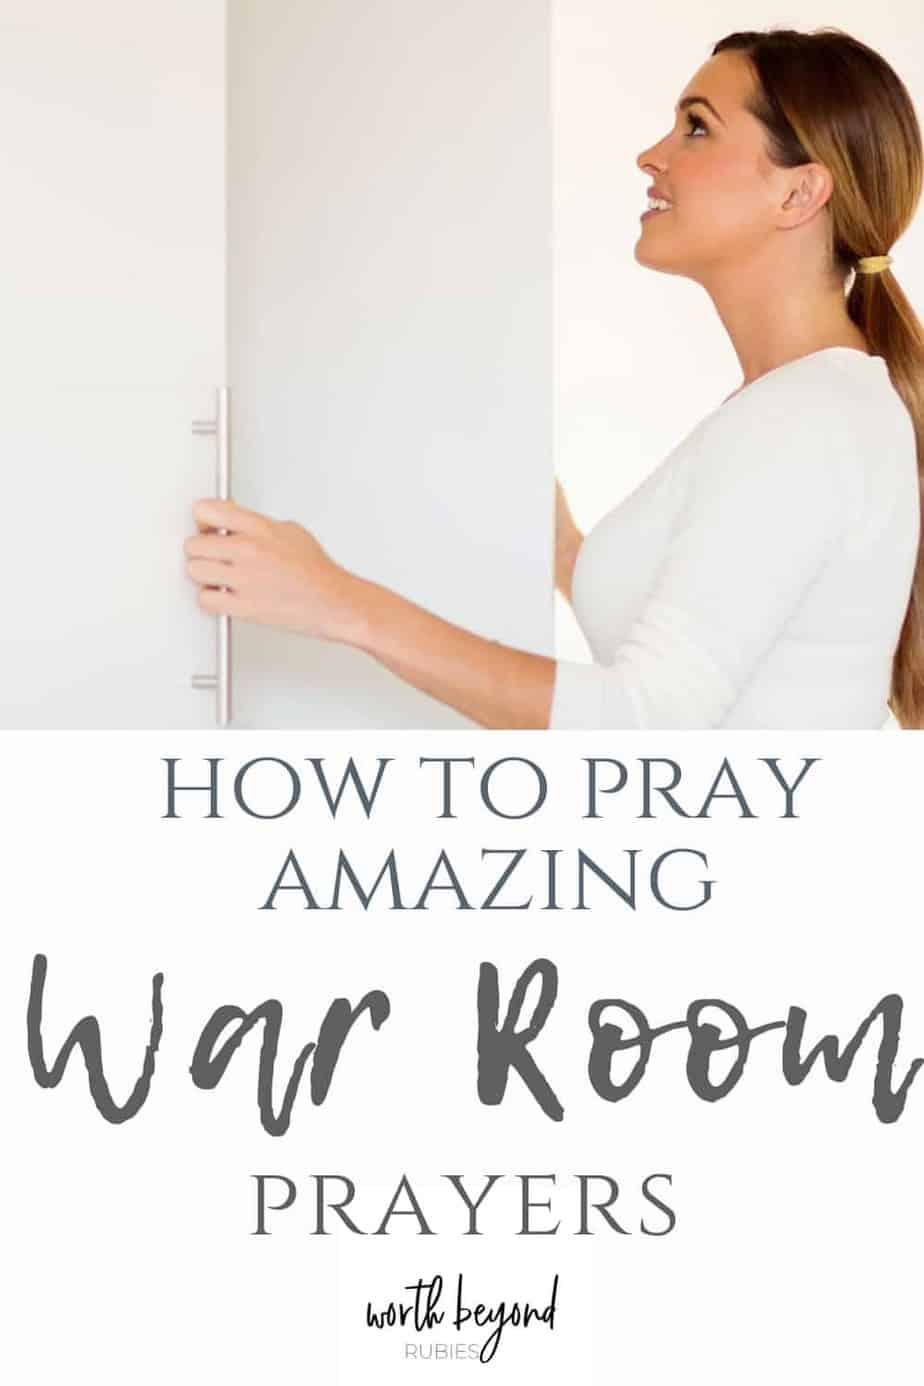 Beautiful young woman opening closet doors and text that says How to Pray Amazing War Room Prayers